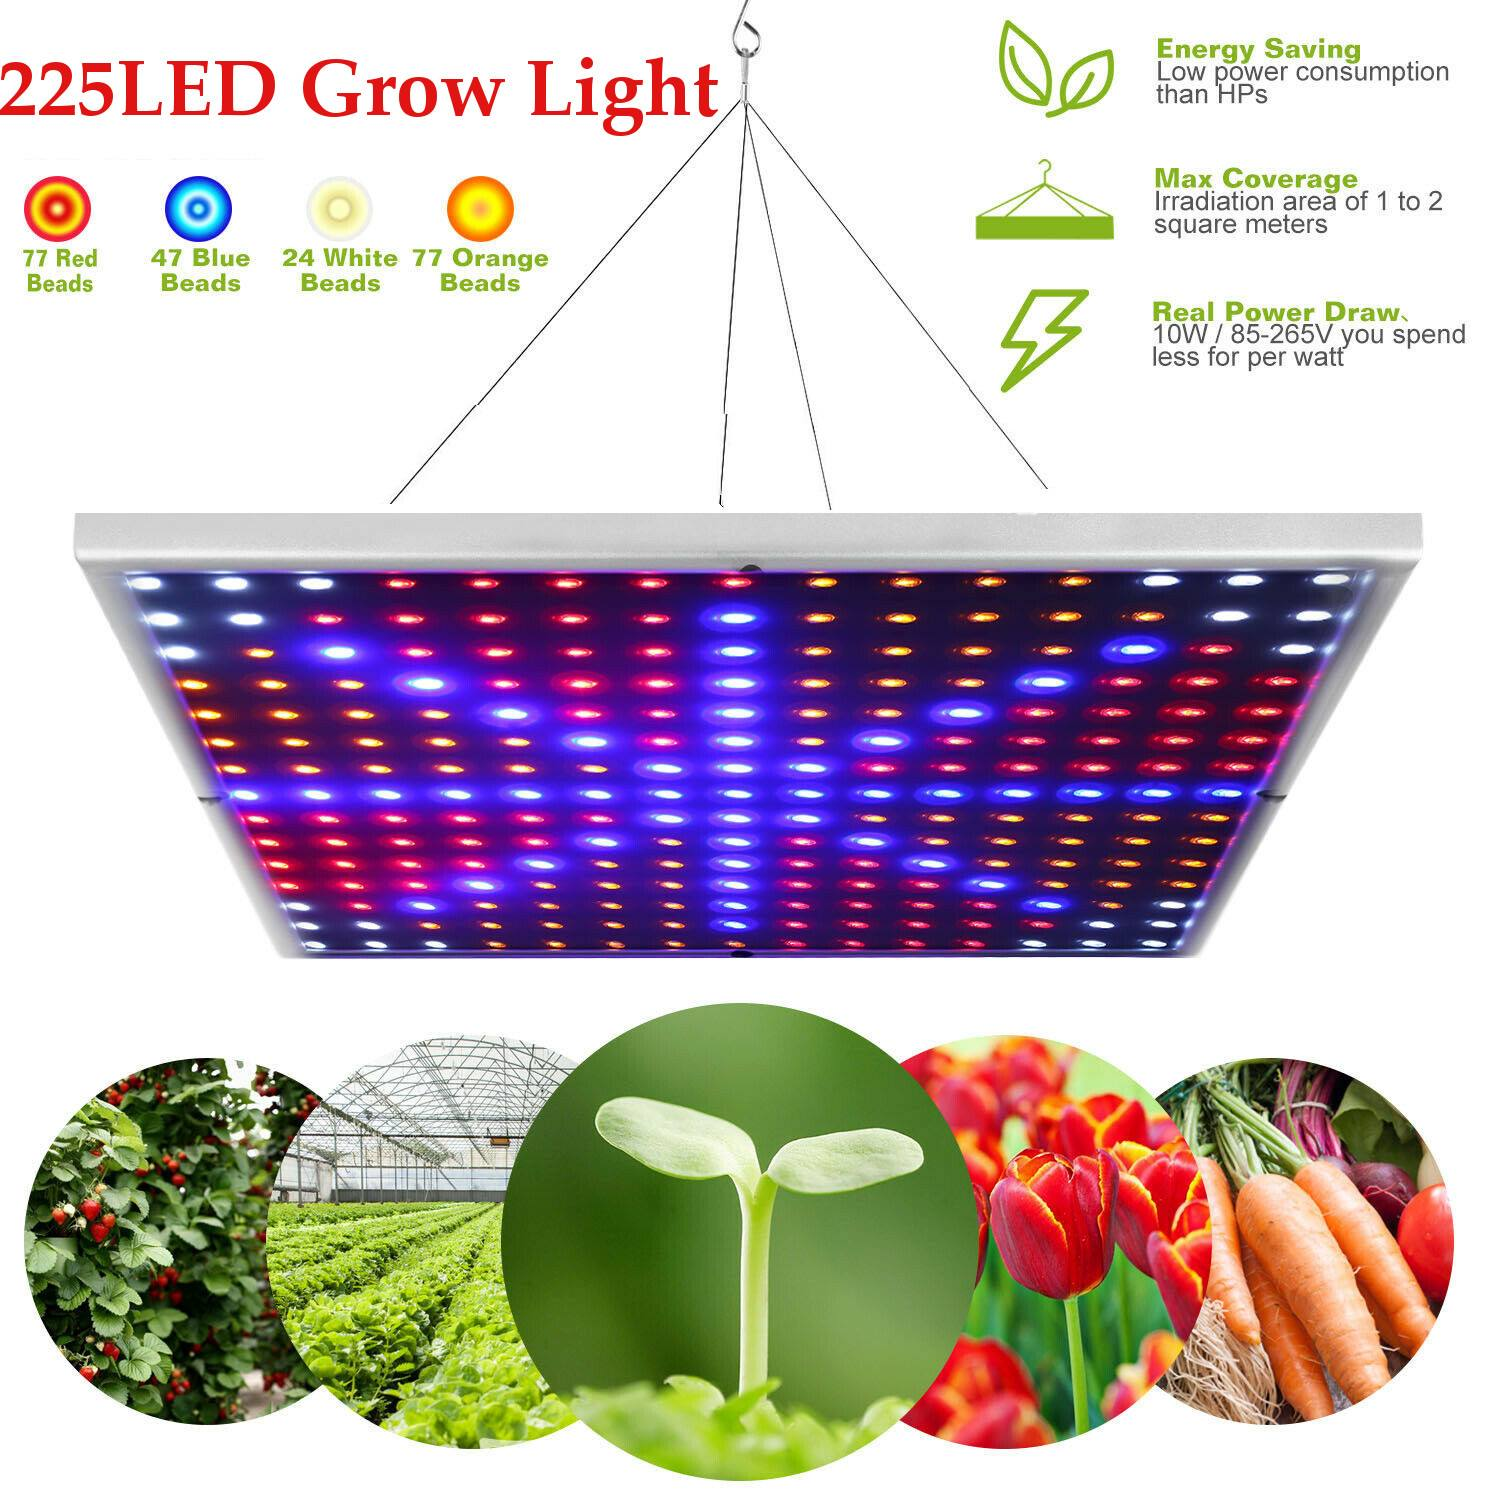 New 45W 225 LEDs Fitolampa Phyto-lamp LED Grow Light Full Spectrum LED Panel Grow Lamp For Plants Hydroponics Tent Aquarium